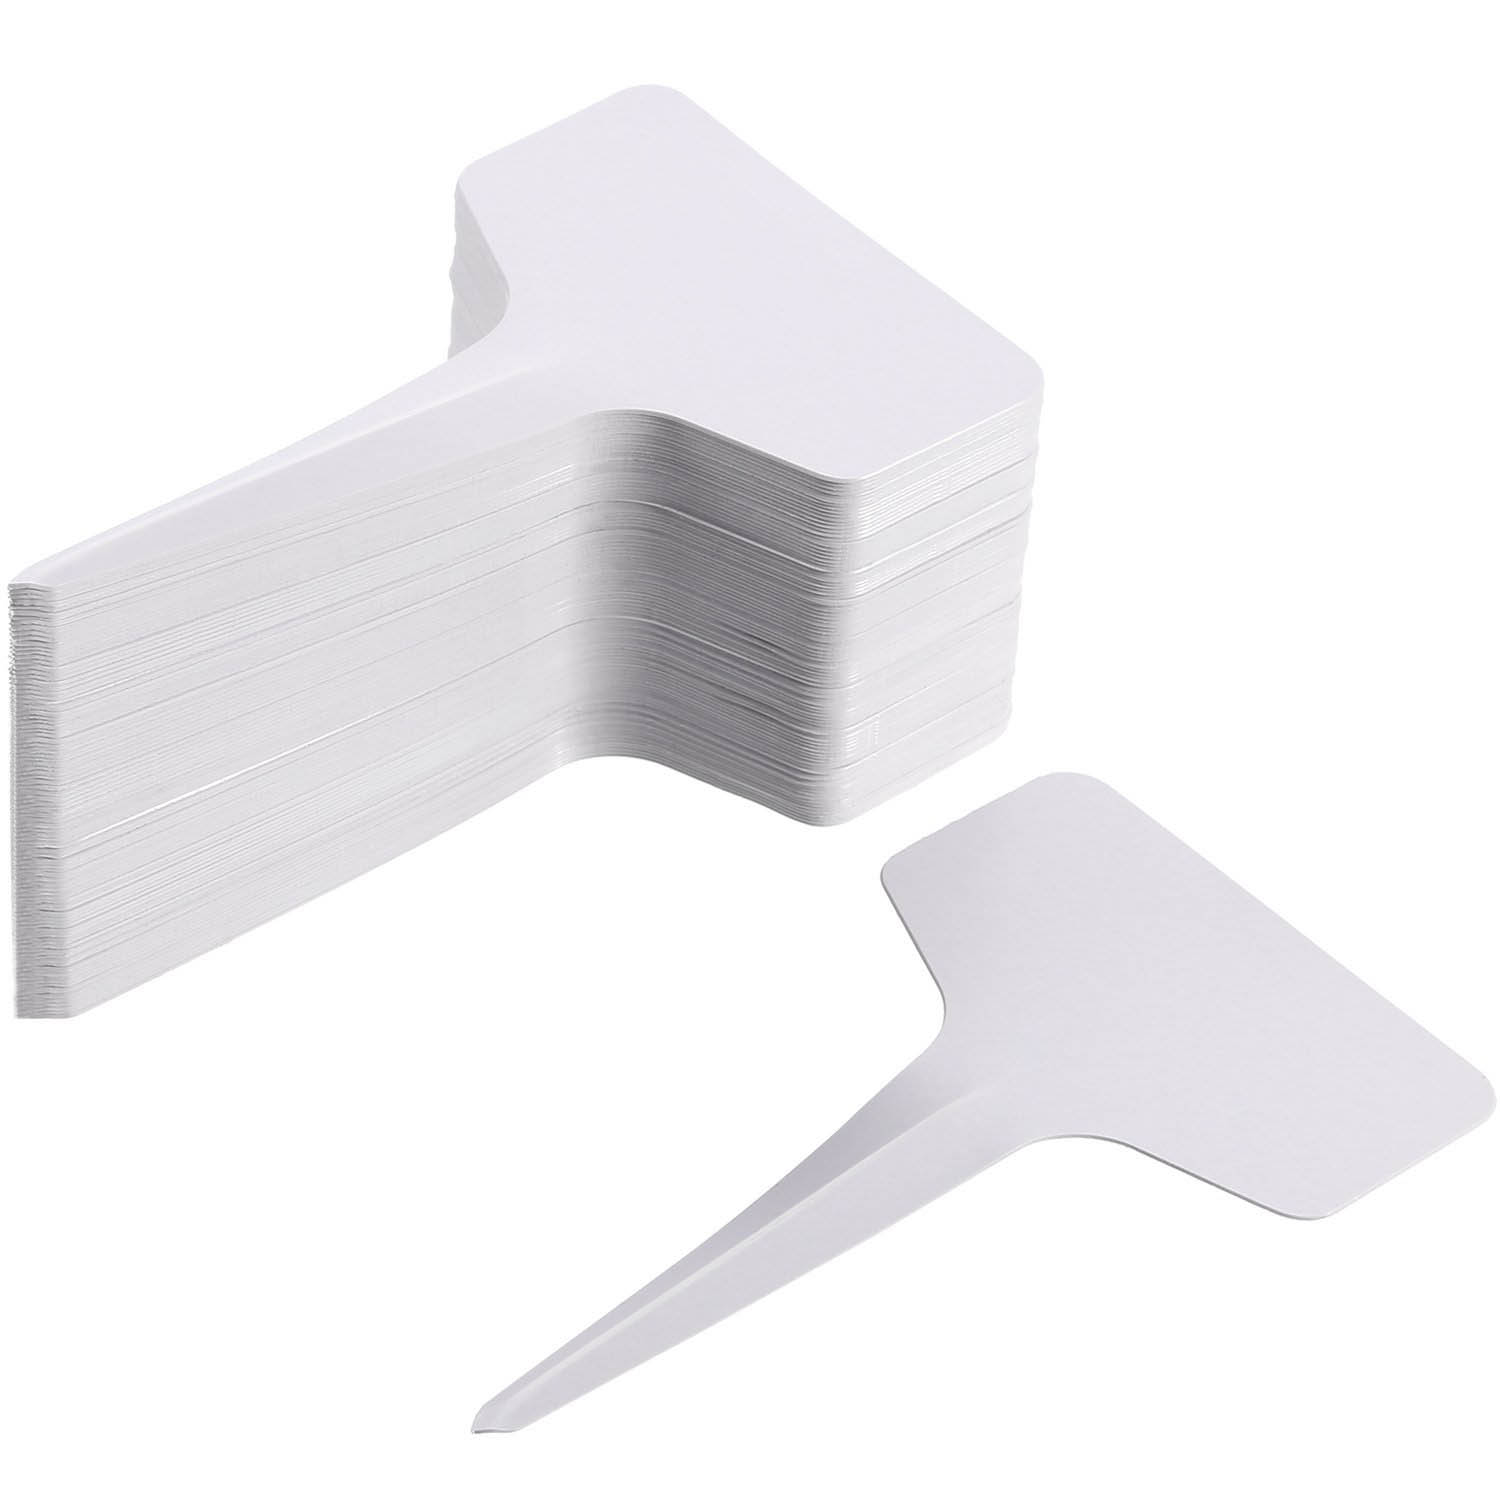 Hot Sale 200 Pack 6 X 10 Cm Plant T-type Tags Plastic Garden Labels Tags Marker Waterproof, White